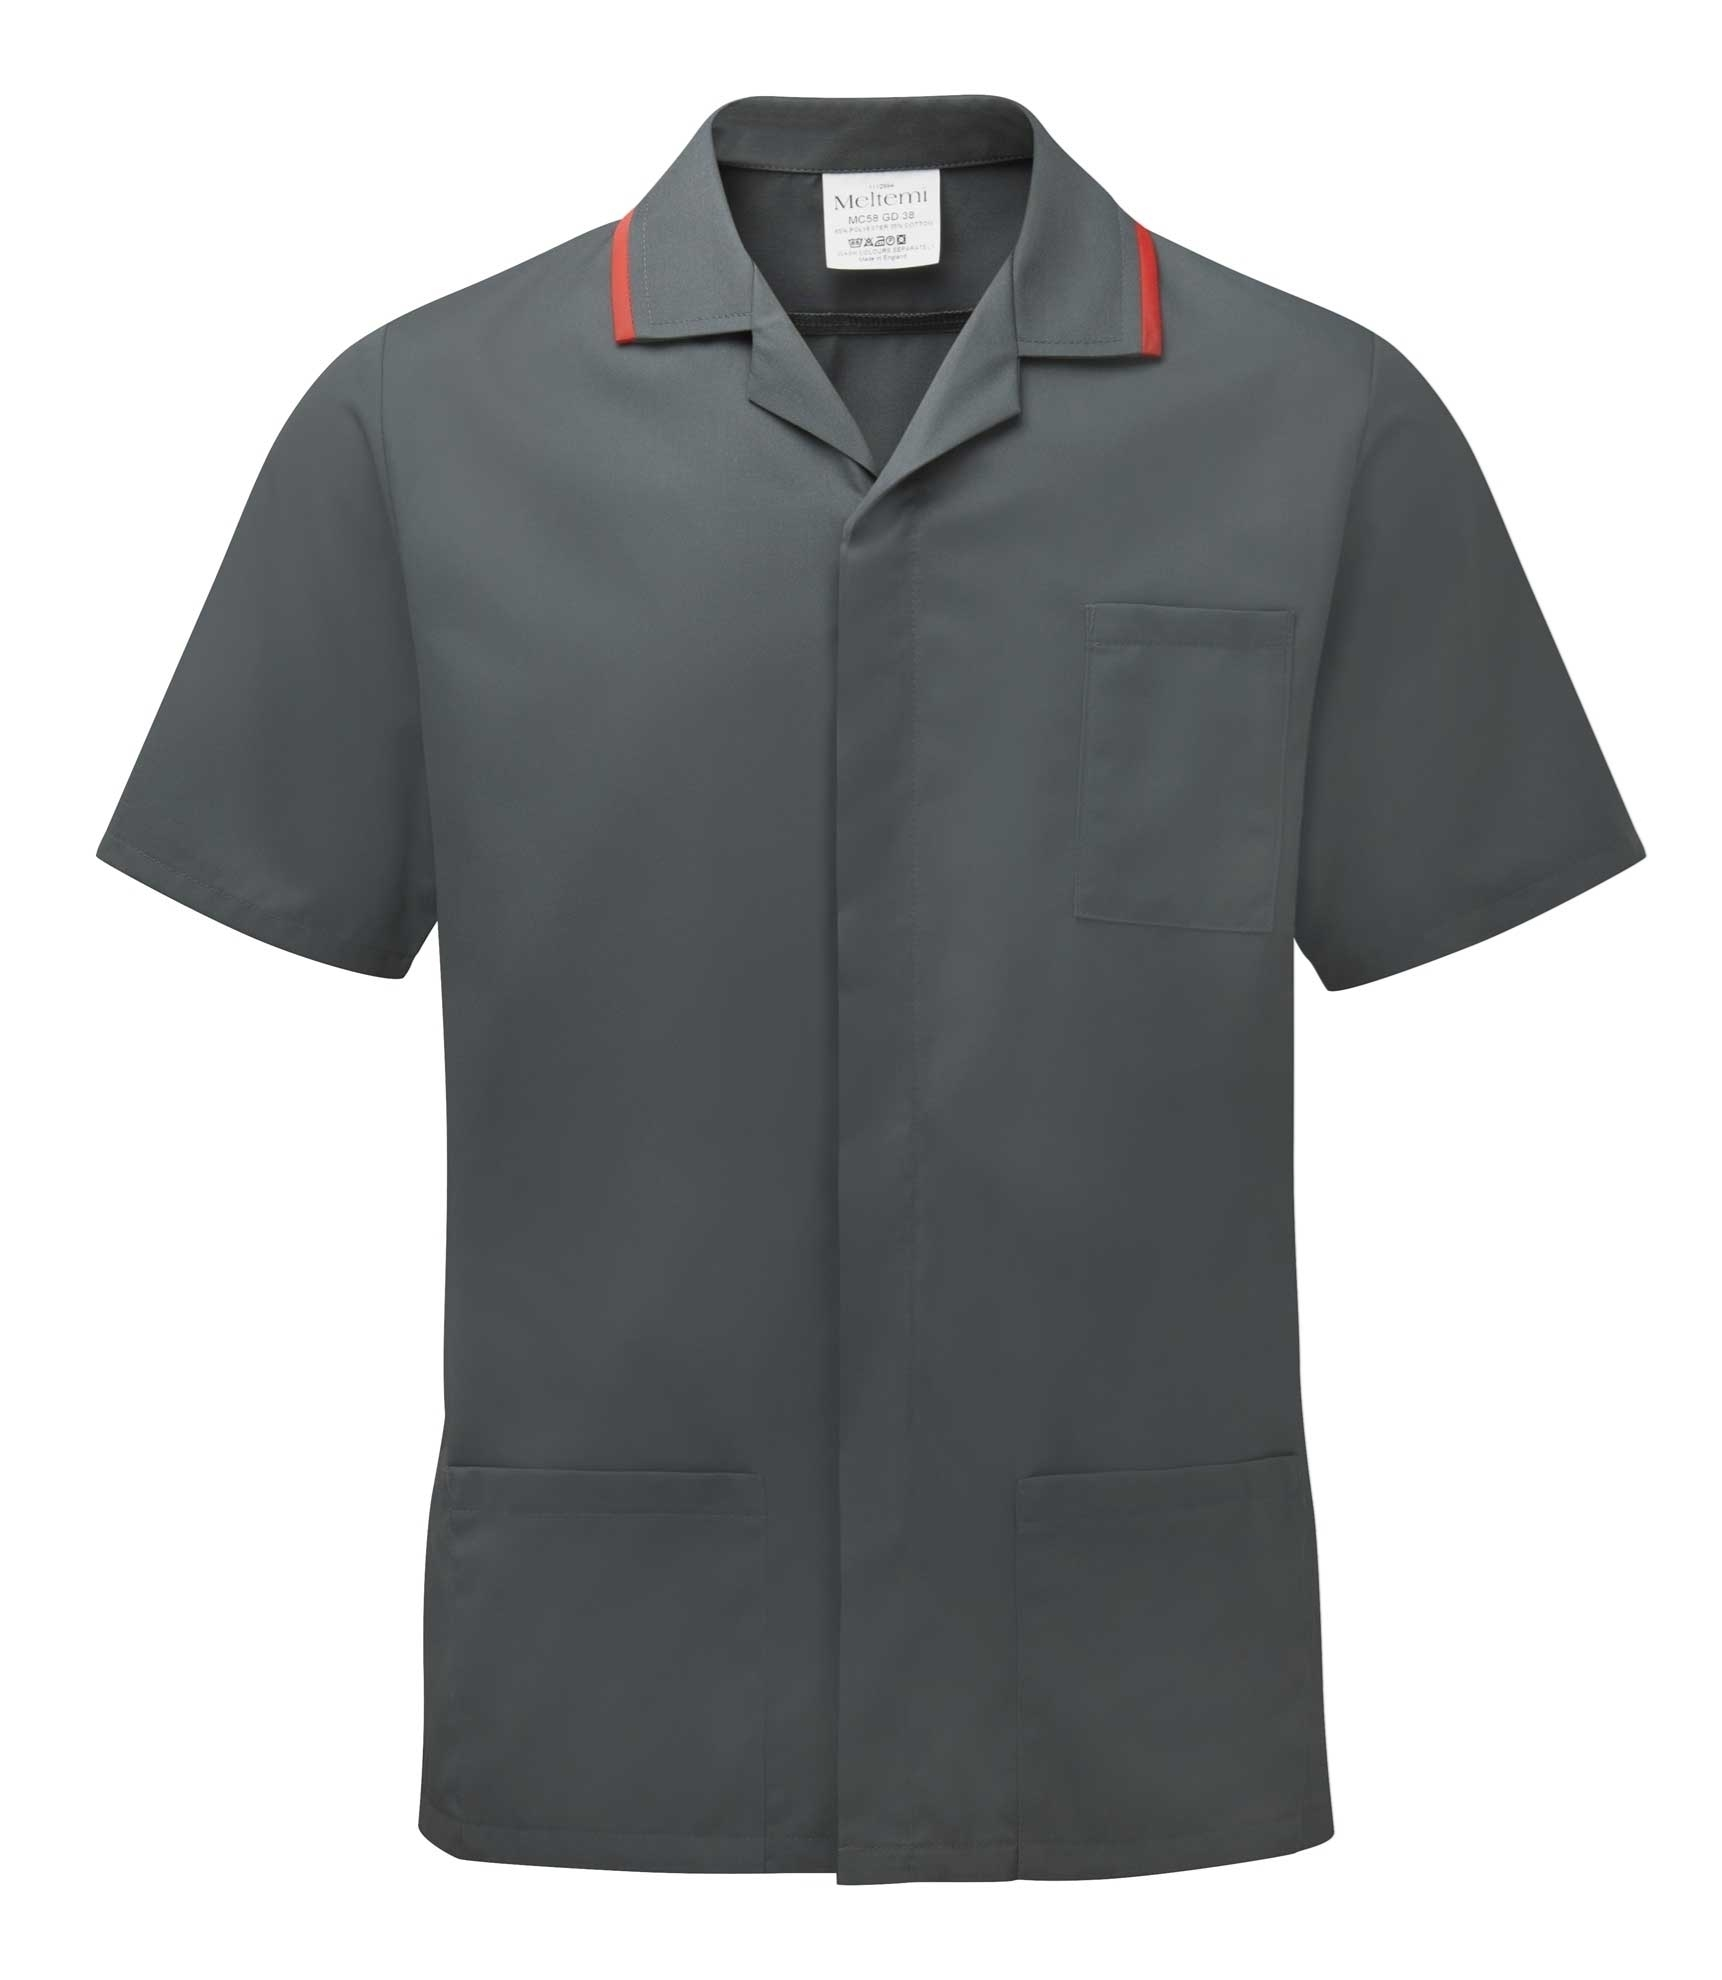 Picture of Advantage Front Fastening Tunic - Charcoal/Red